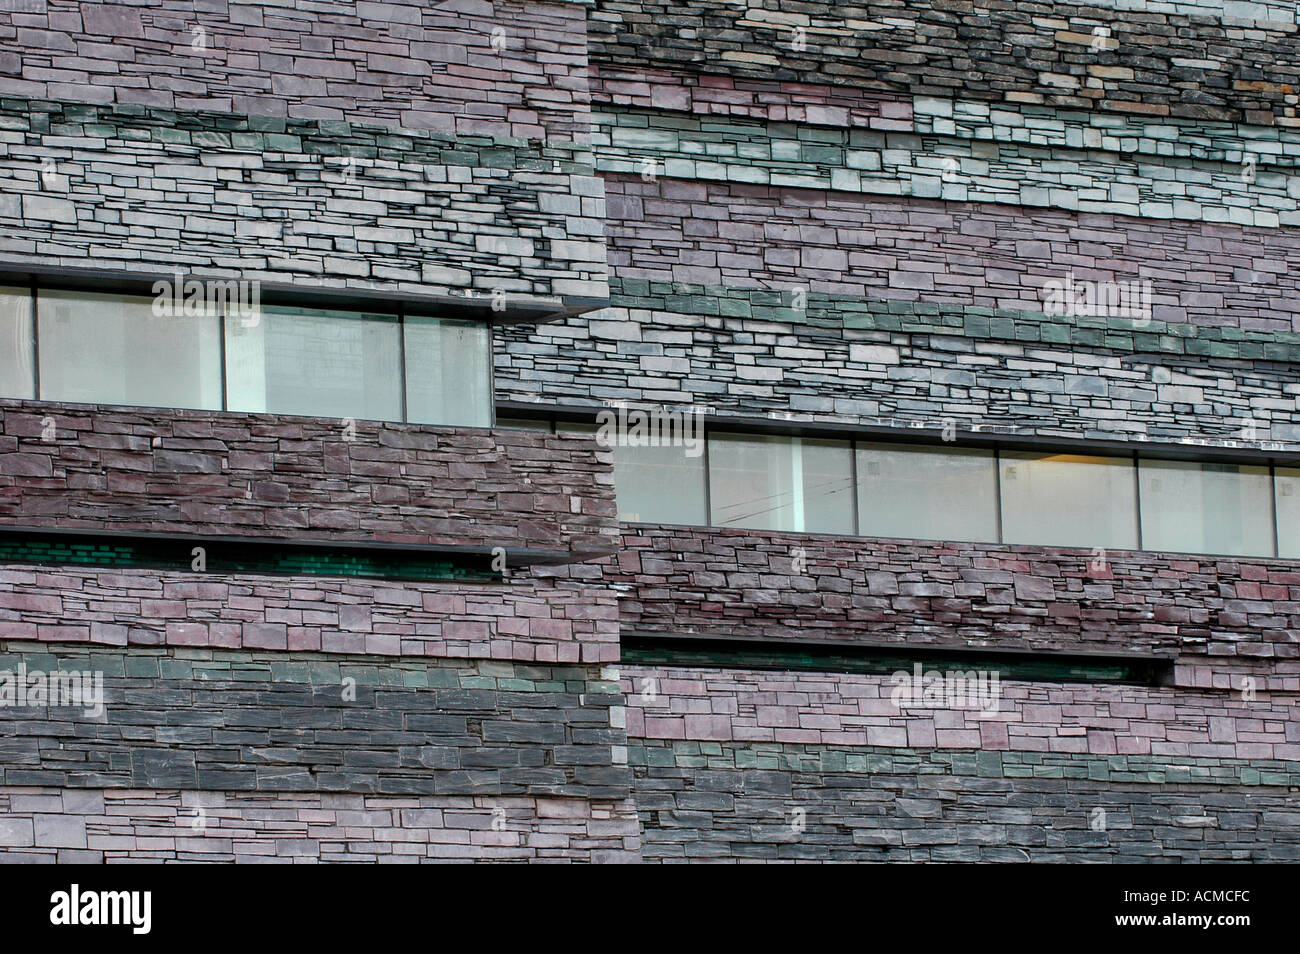 Welsh Slate Cladding On Exterior Wall Of The Wales Millennium Centre  Cardiff Bay South Wales UK